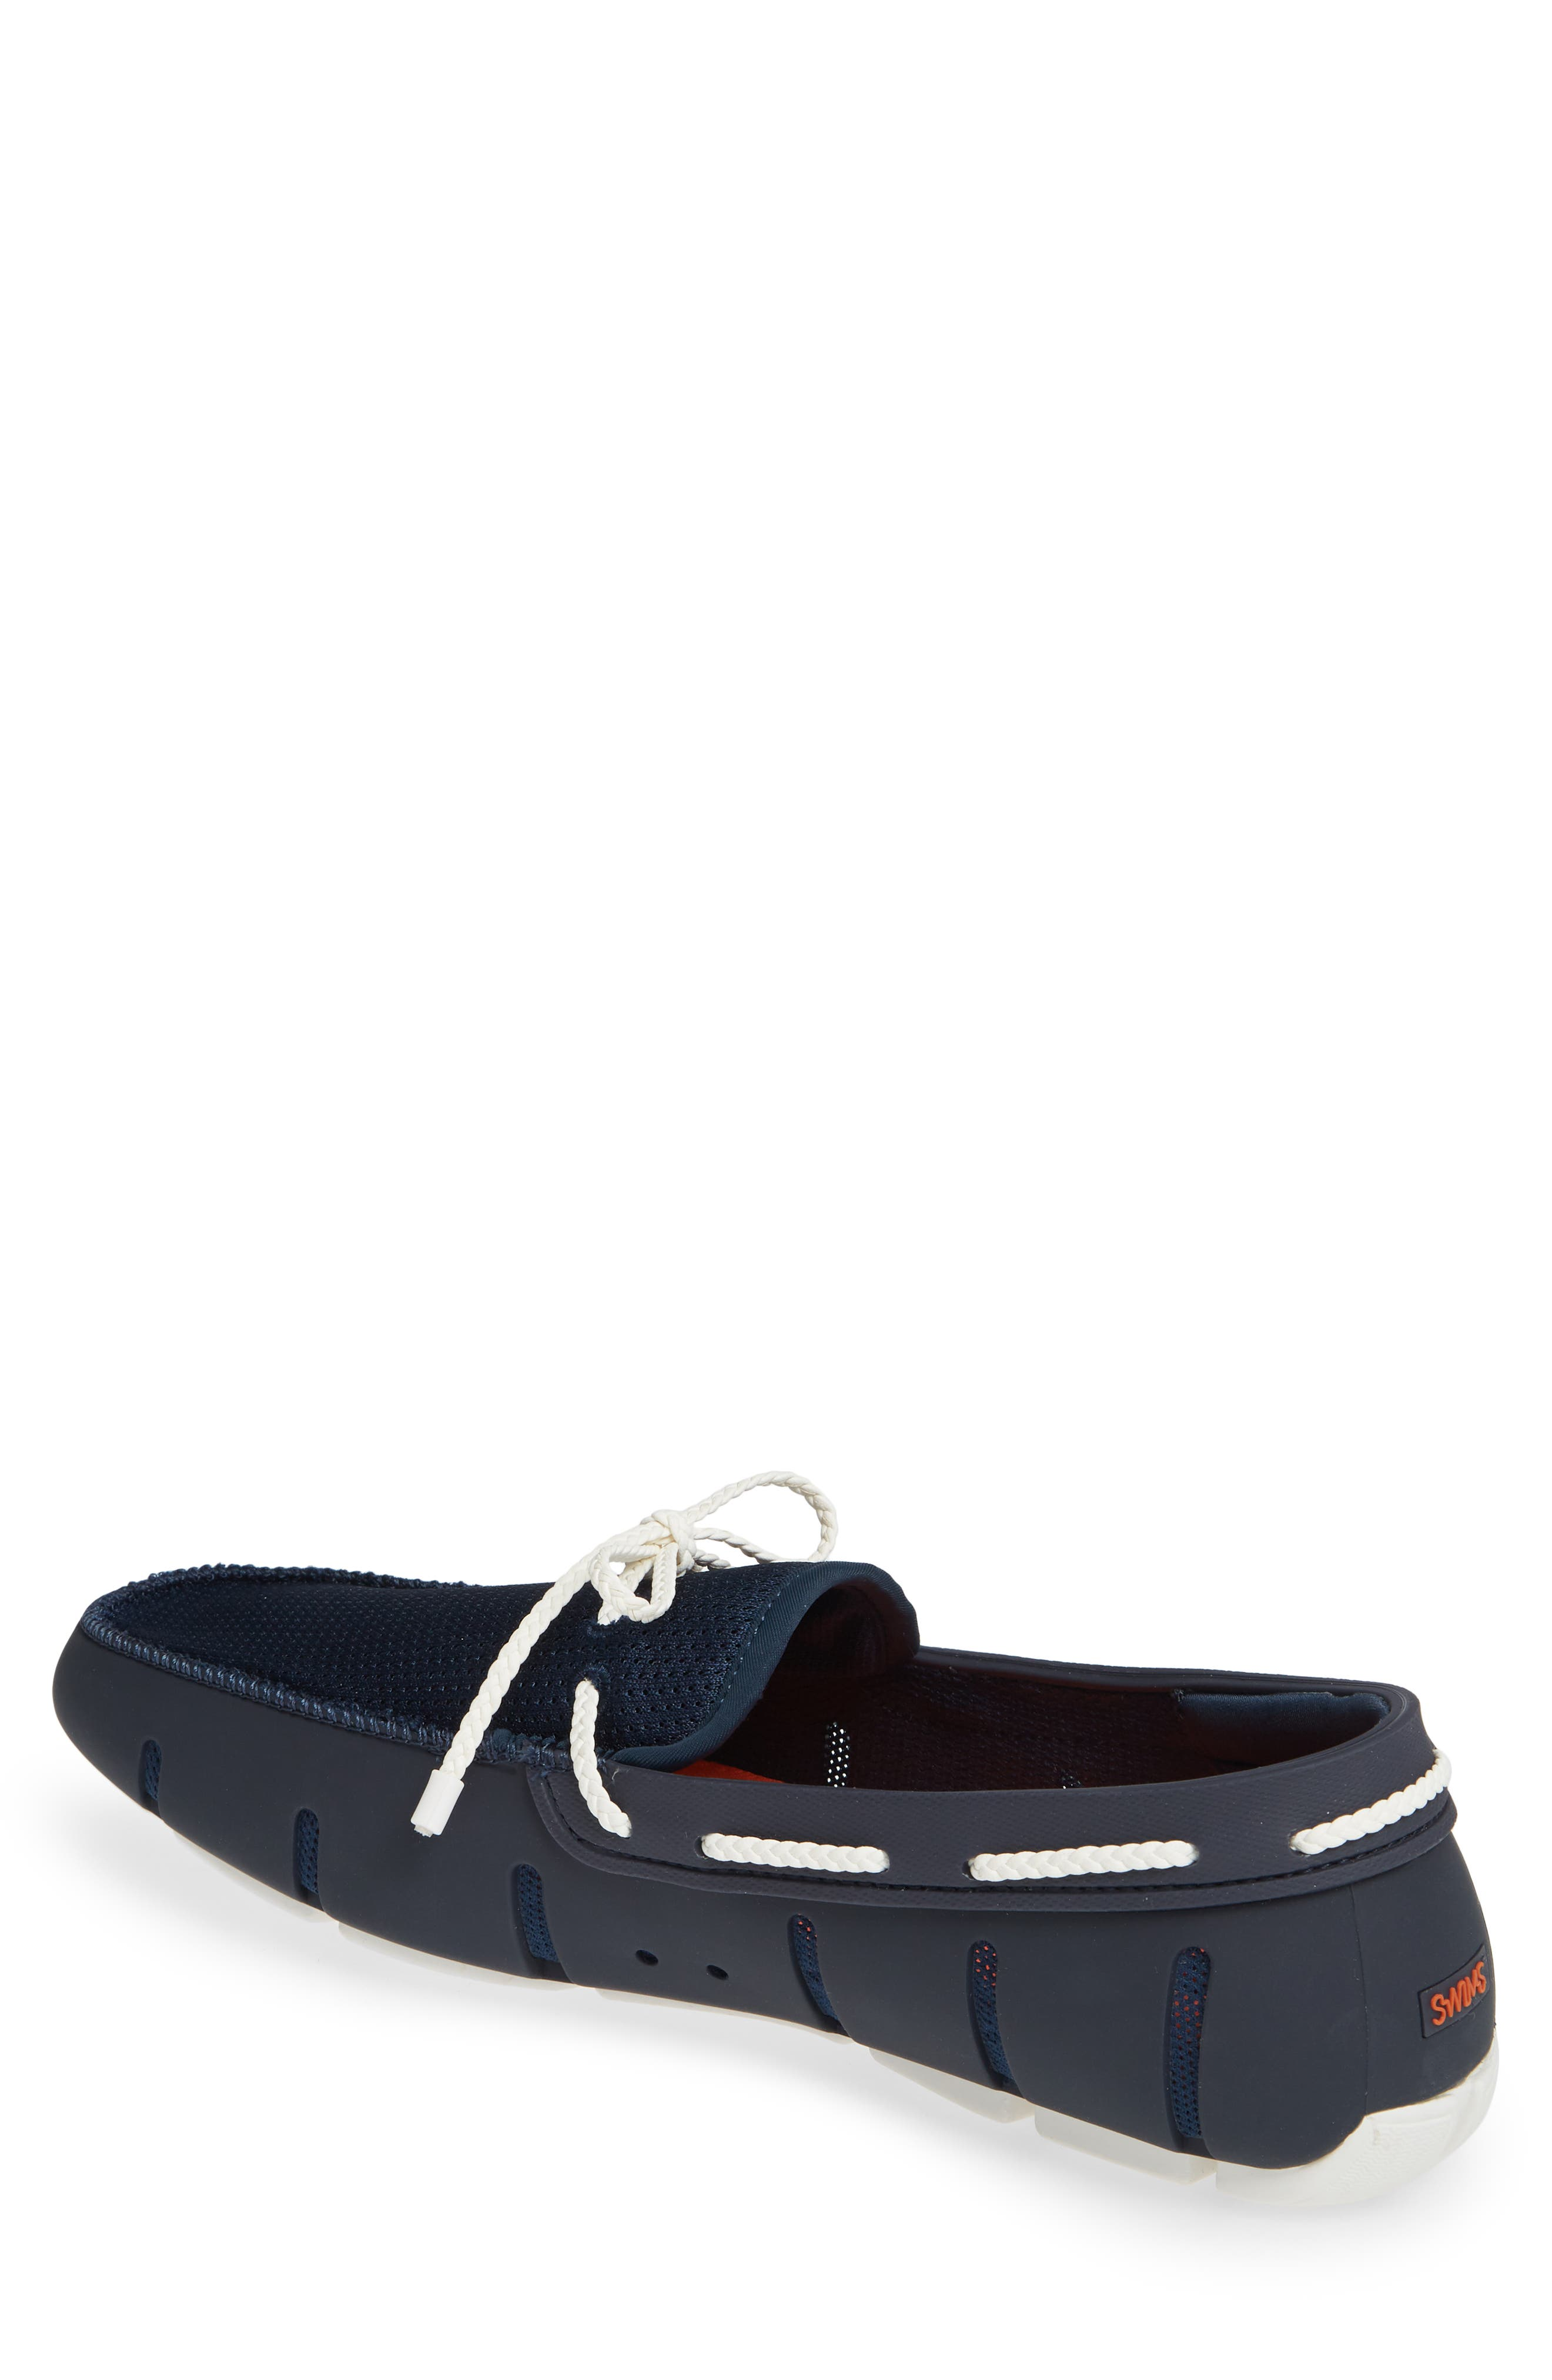 SWIMS, Lace Loafer, Alternate thumbnail 2, color, DARK NAVY/ WHITE